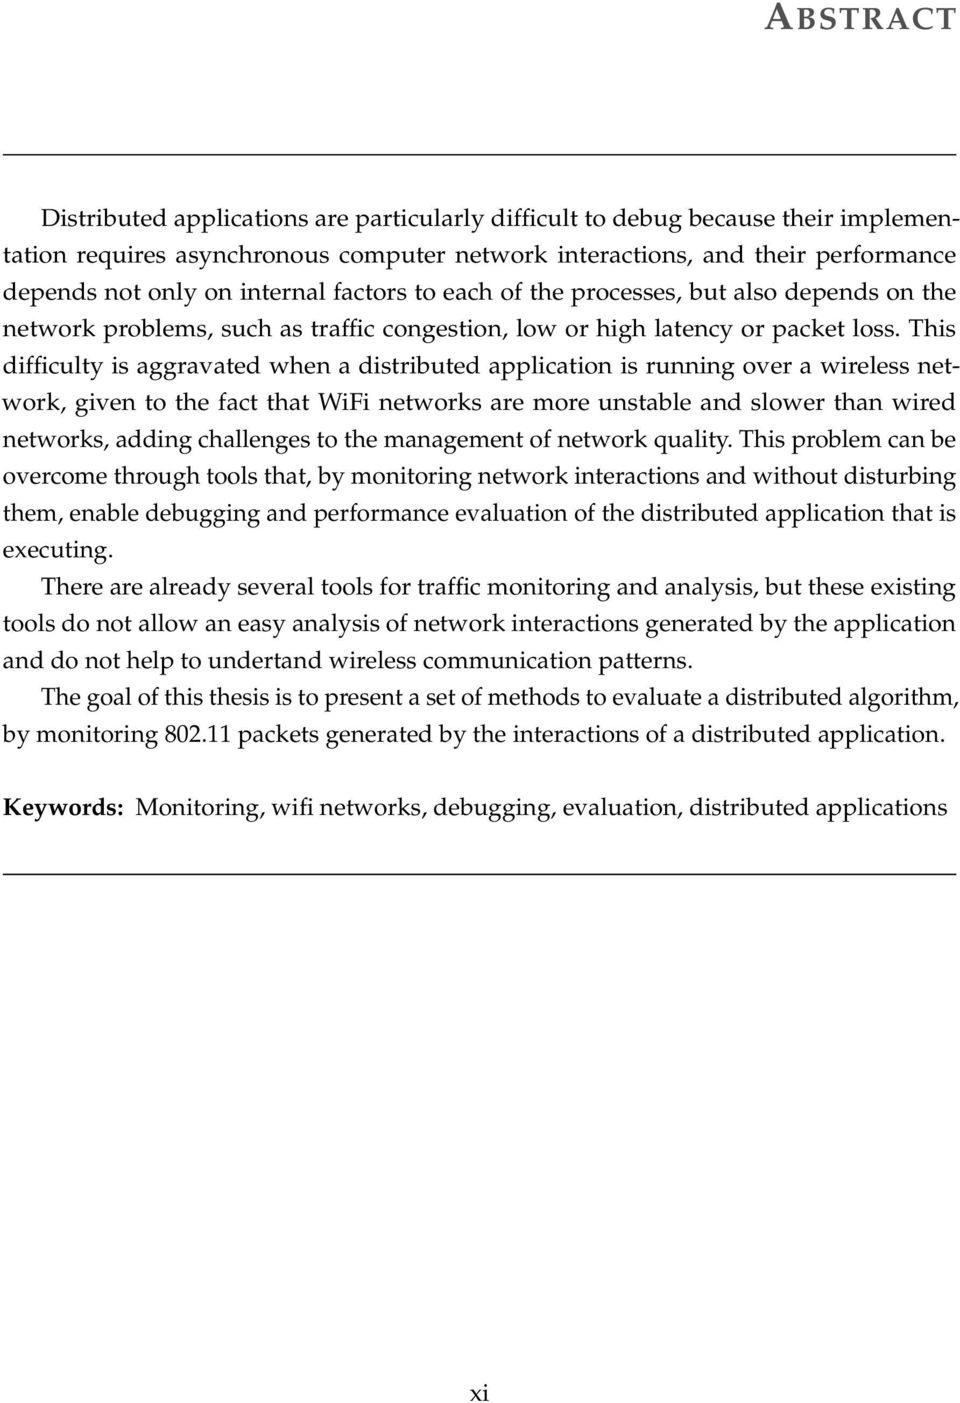 This difficulty is aggravated when a distributed application is running over a wireless network, given to the fact that WiFi networks are more unstable and slower than wired networks, adding